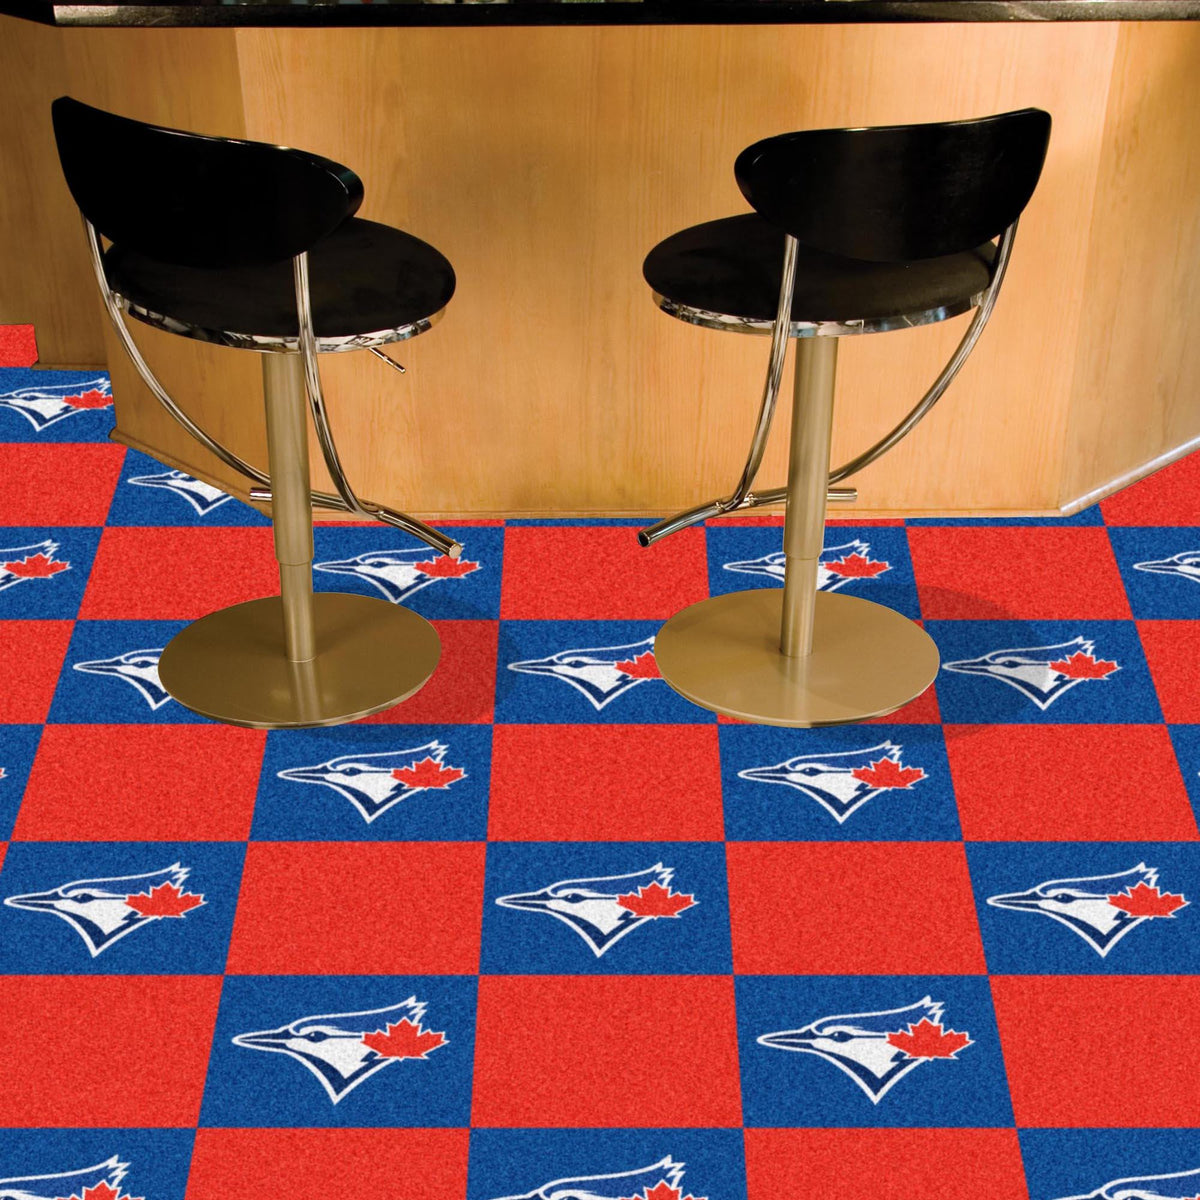 MLB - Team Carpet Tiles MLB Mats, Carpet Tile Flooring, Team Carpet Tiles, MLB, Home Fan Mats Toronto Blue Jays